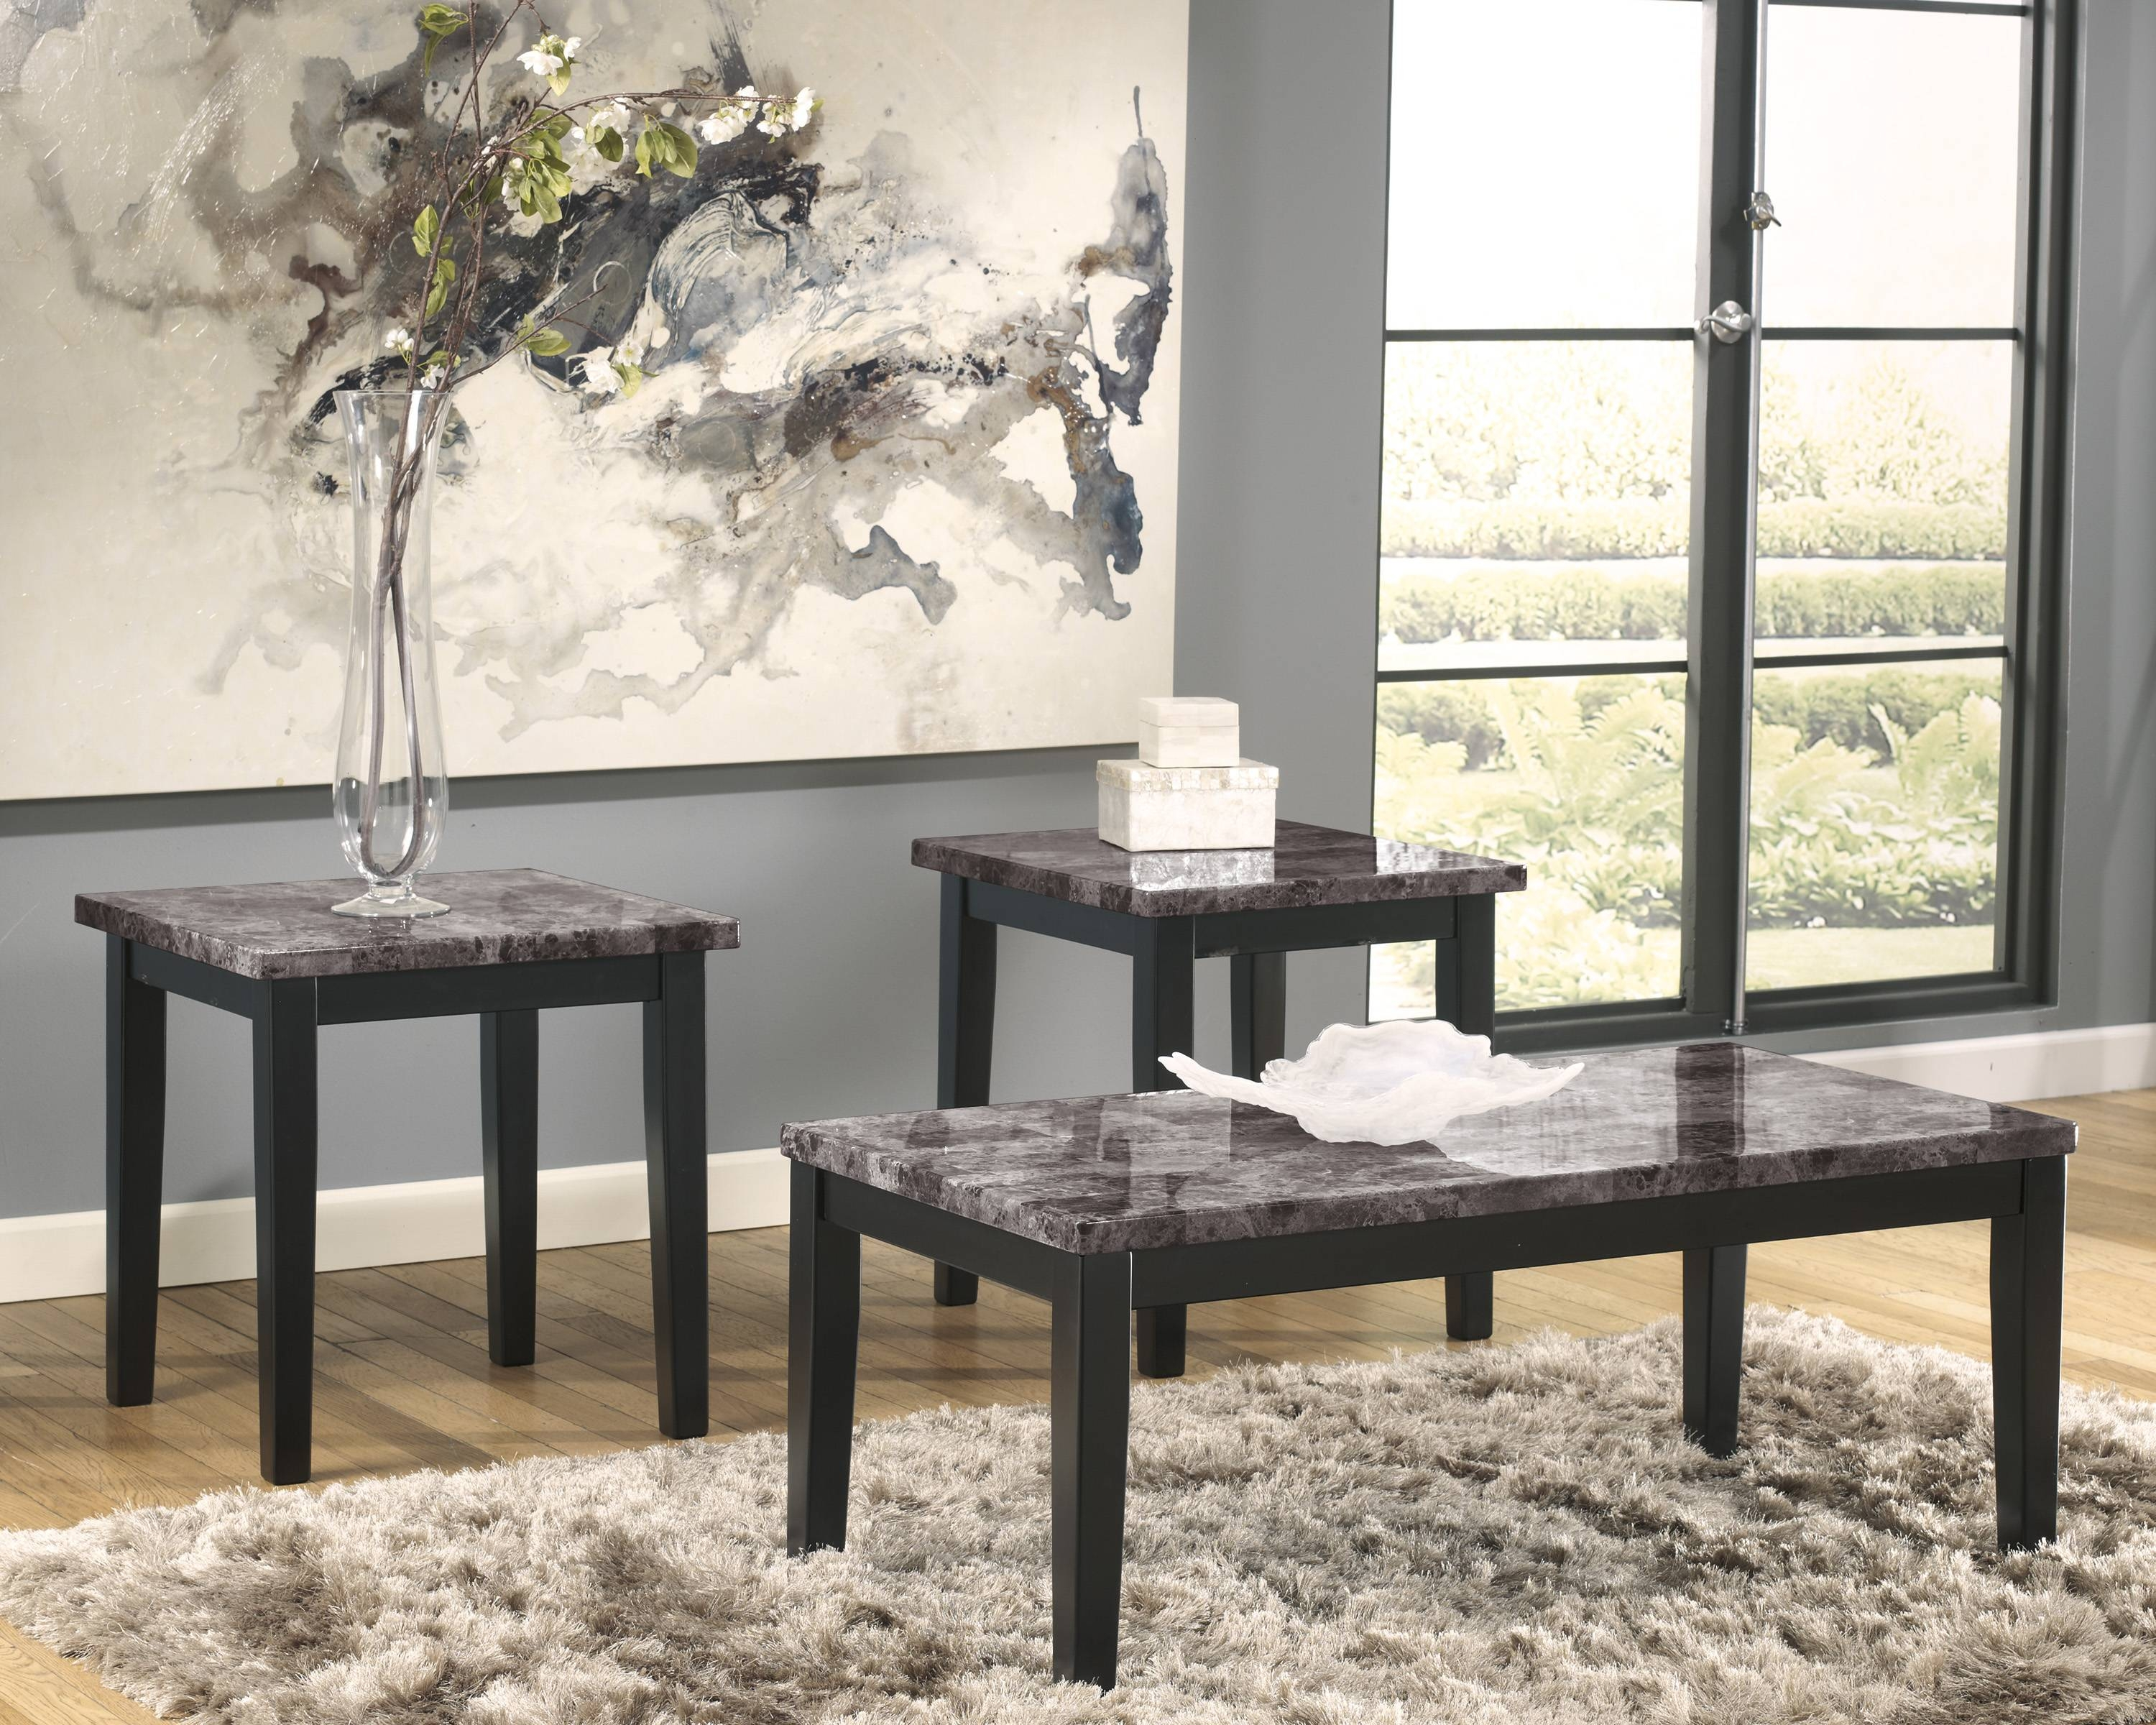 30 Ideas of Black and Grey Marble Coffee Tables